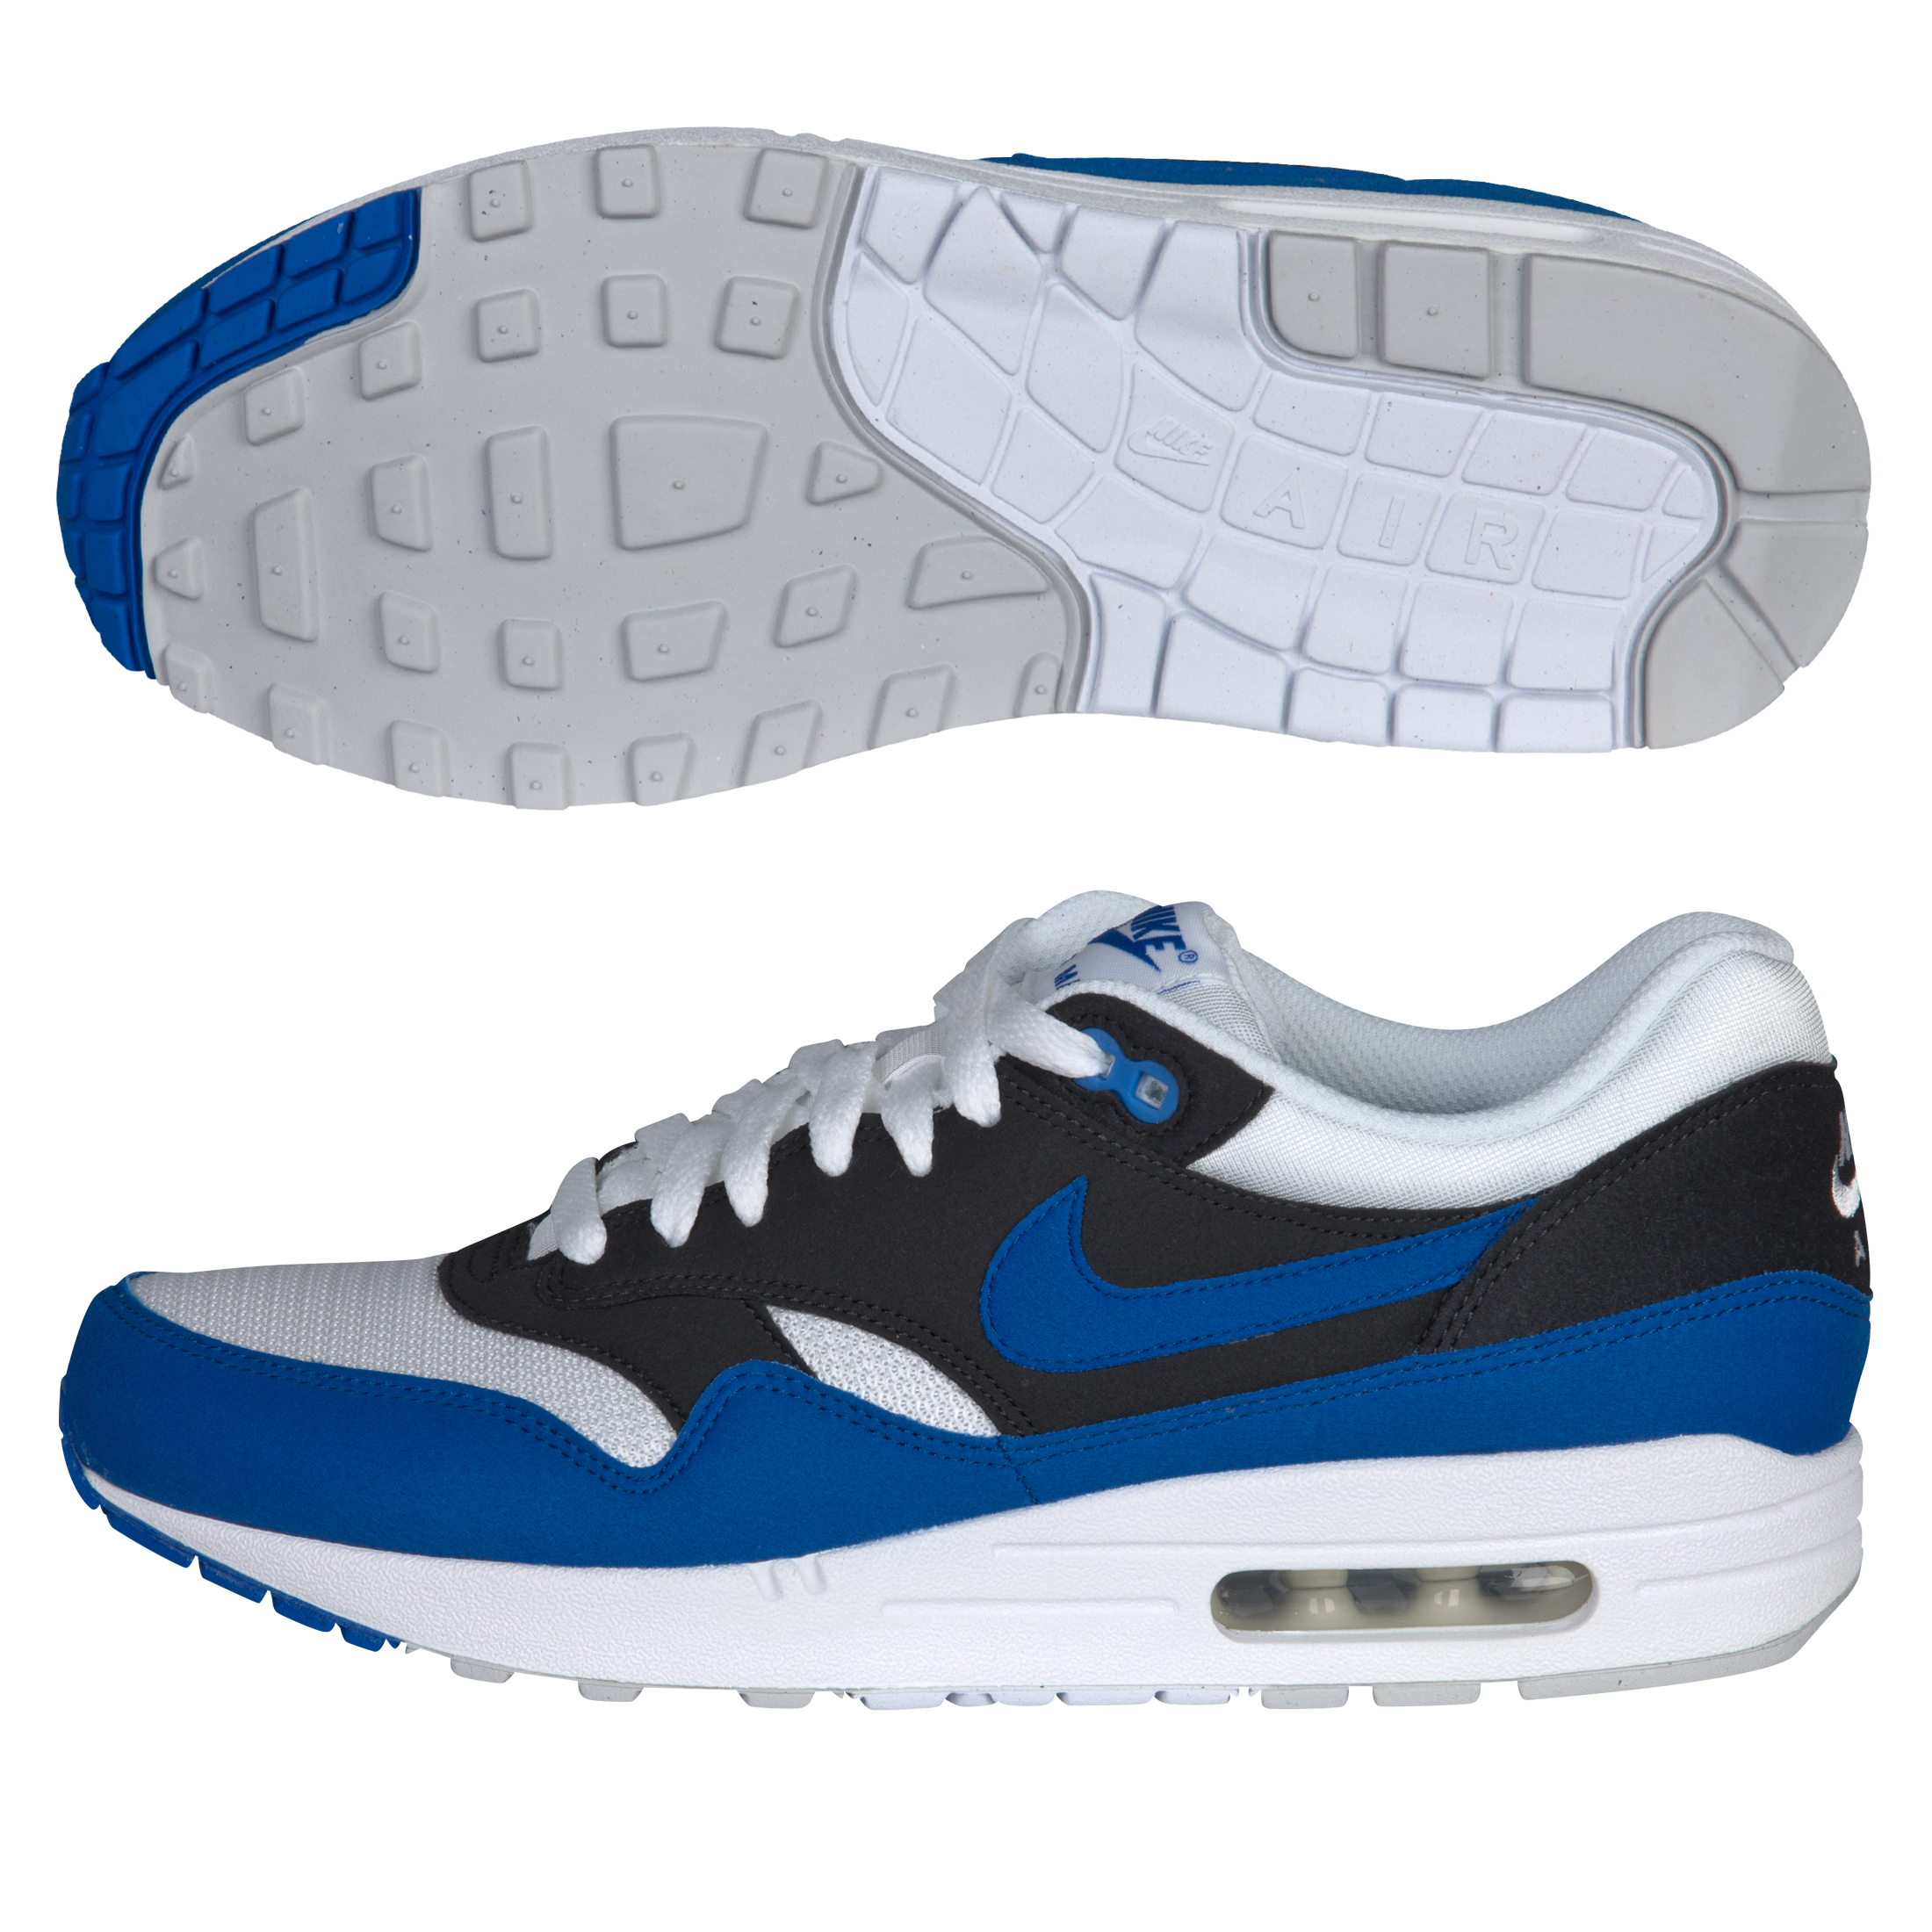 Nike Air Max 1 Trainers - White/Signal Blue/Antracite